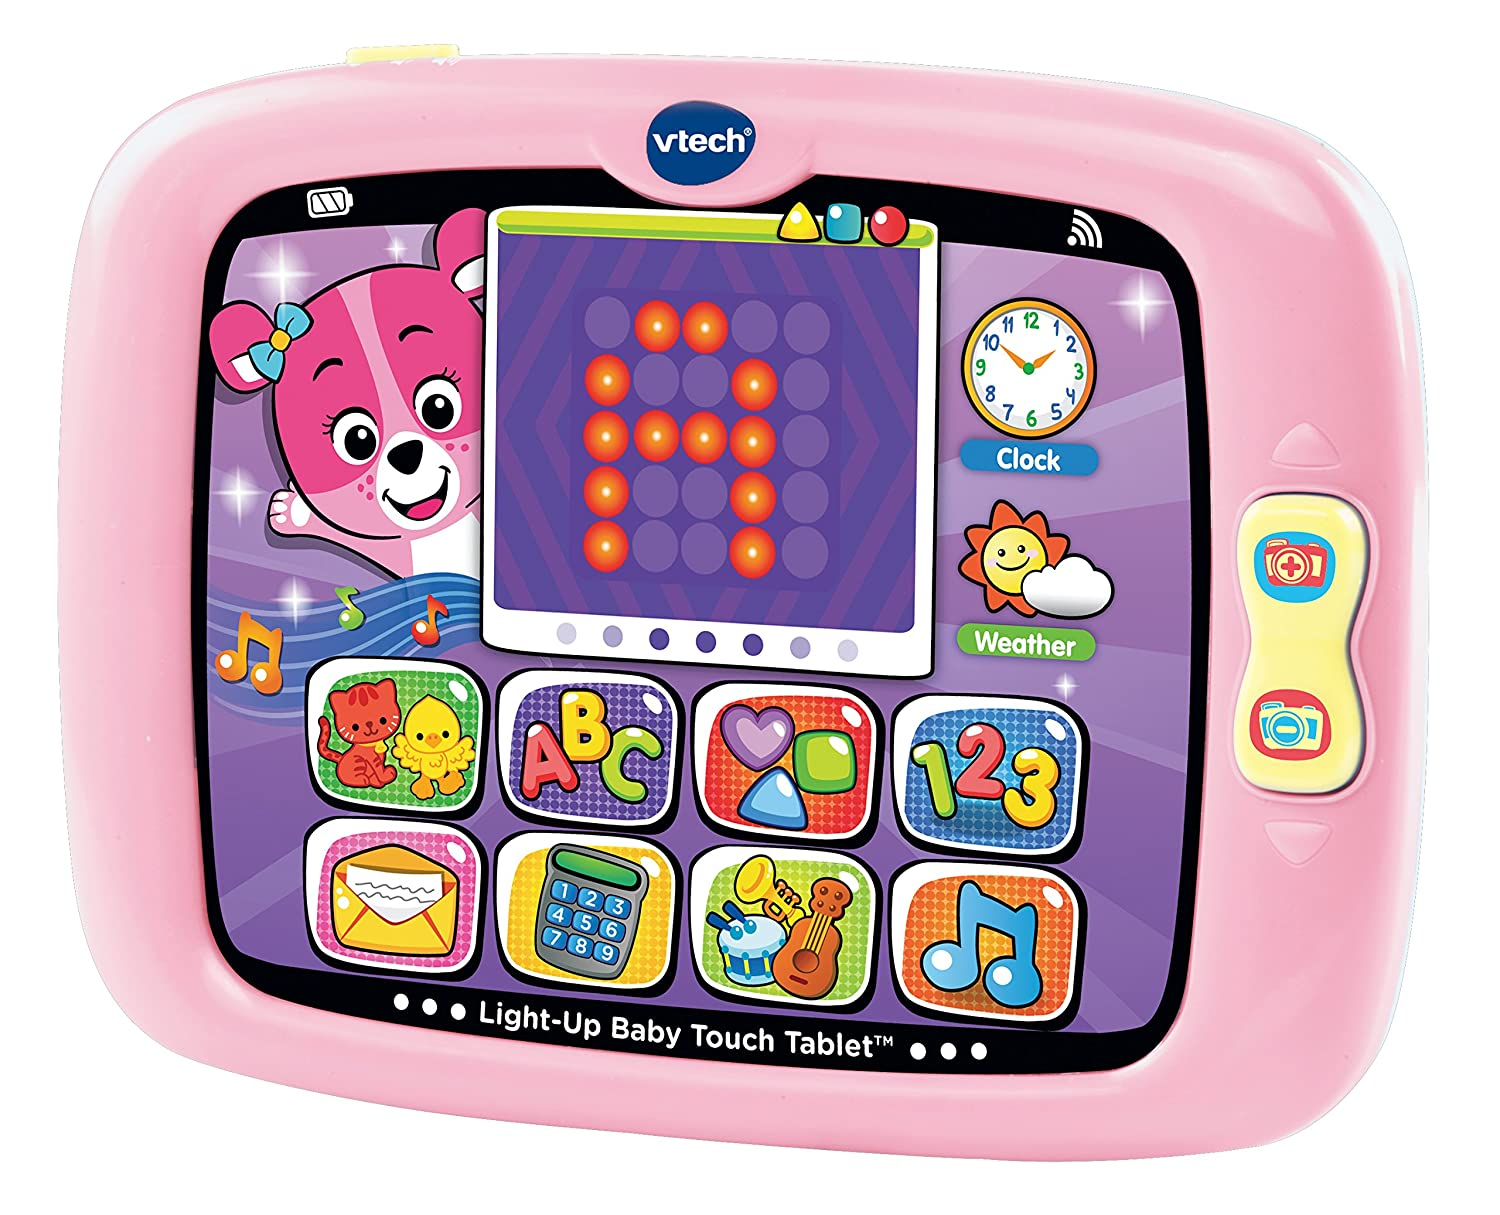 VTech Light-Up Baby Touch Tablet Pink (Frustration Free Packaging)